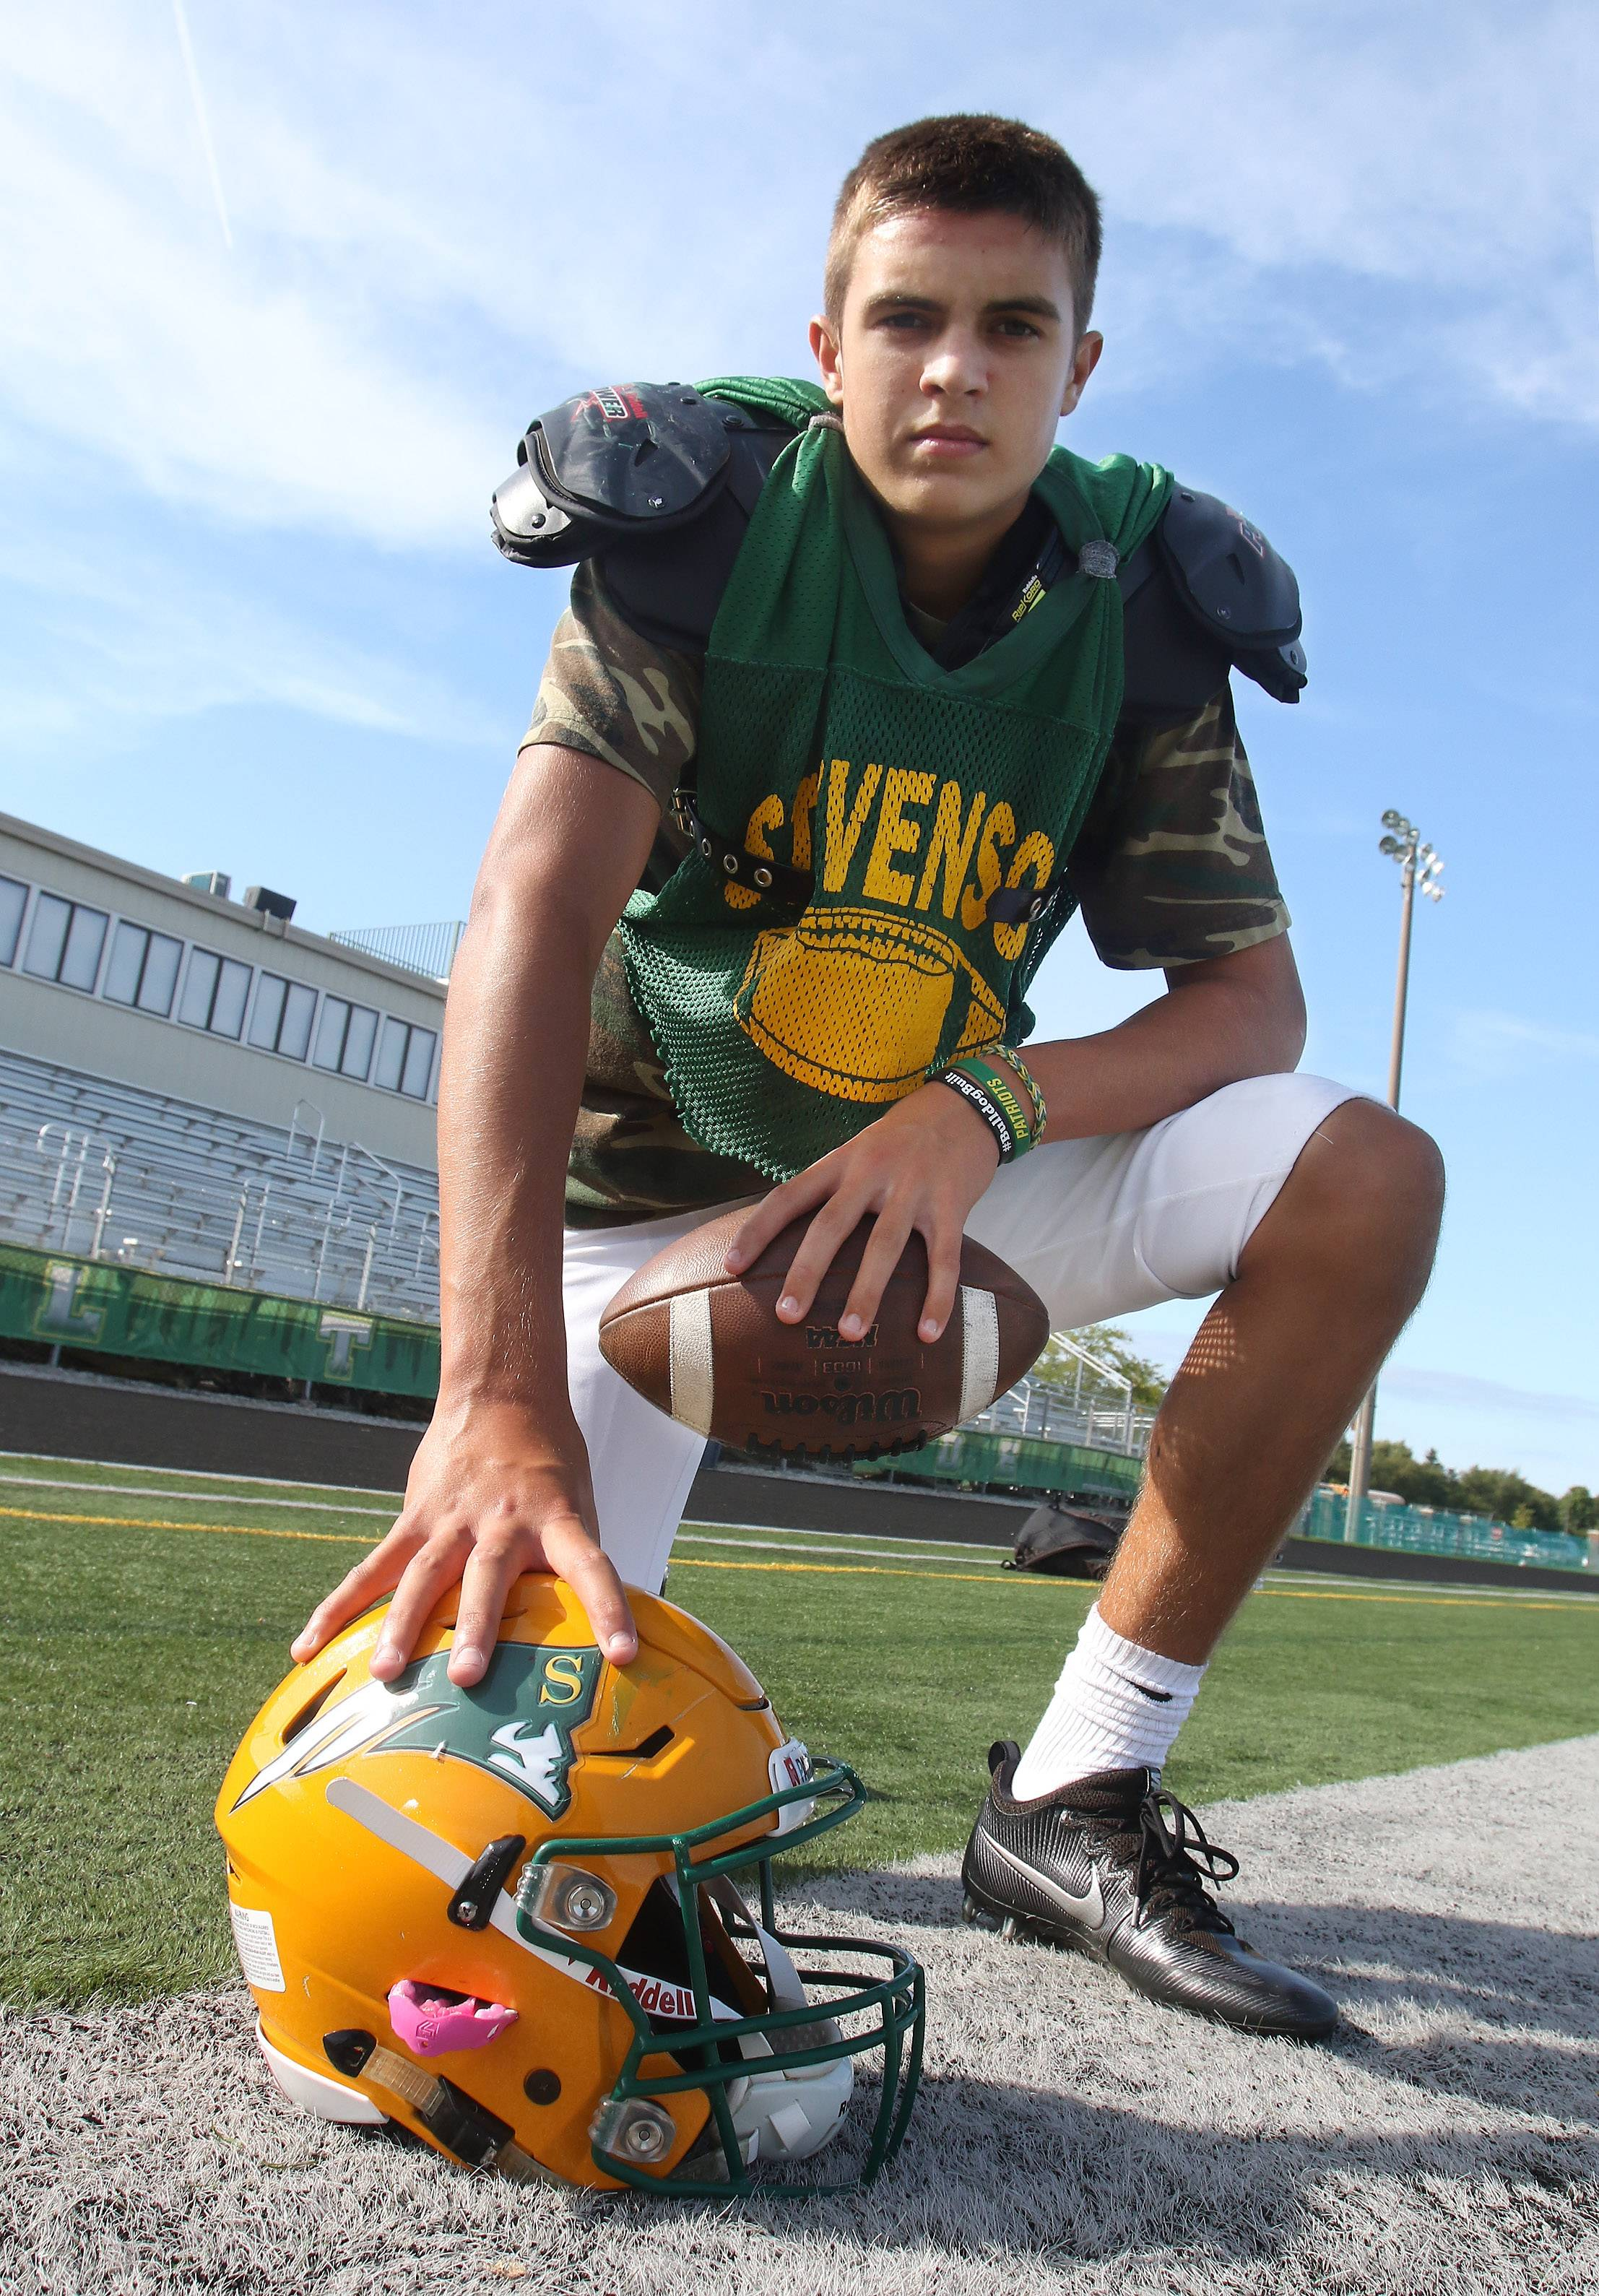 Aidan O'Connell is extending Stevenson's recent history of fine play at the quarterback position.